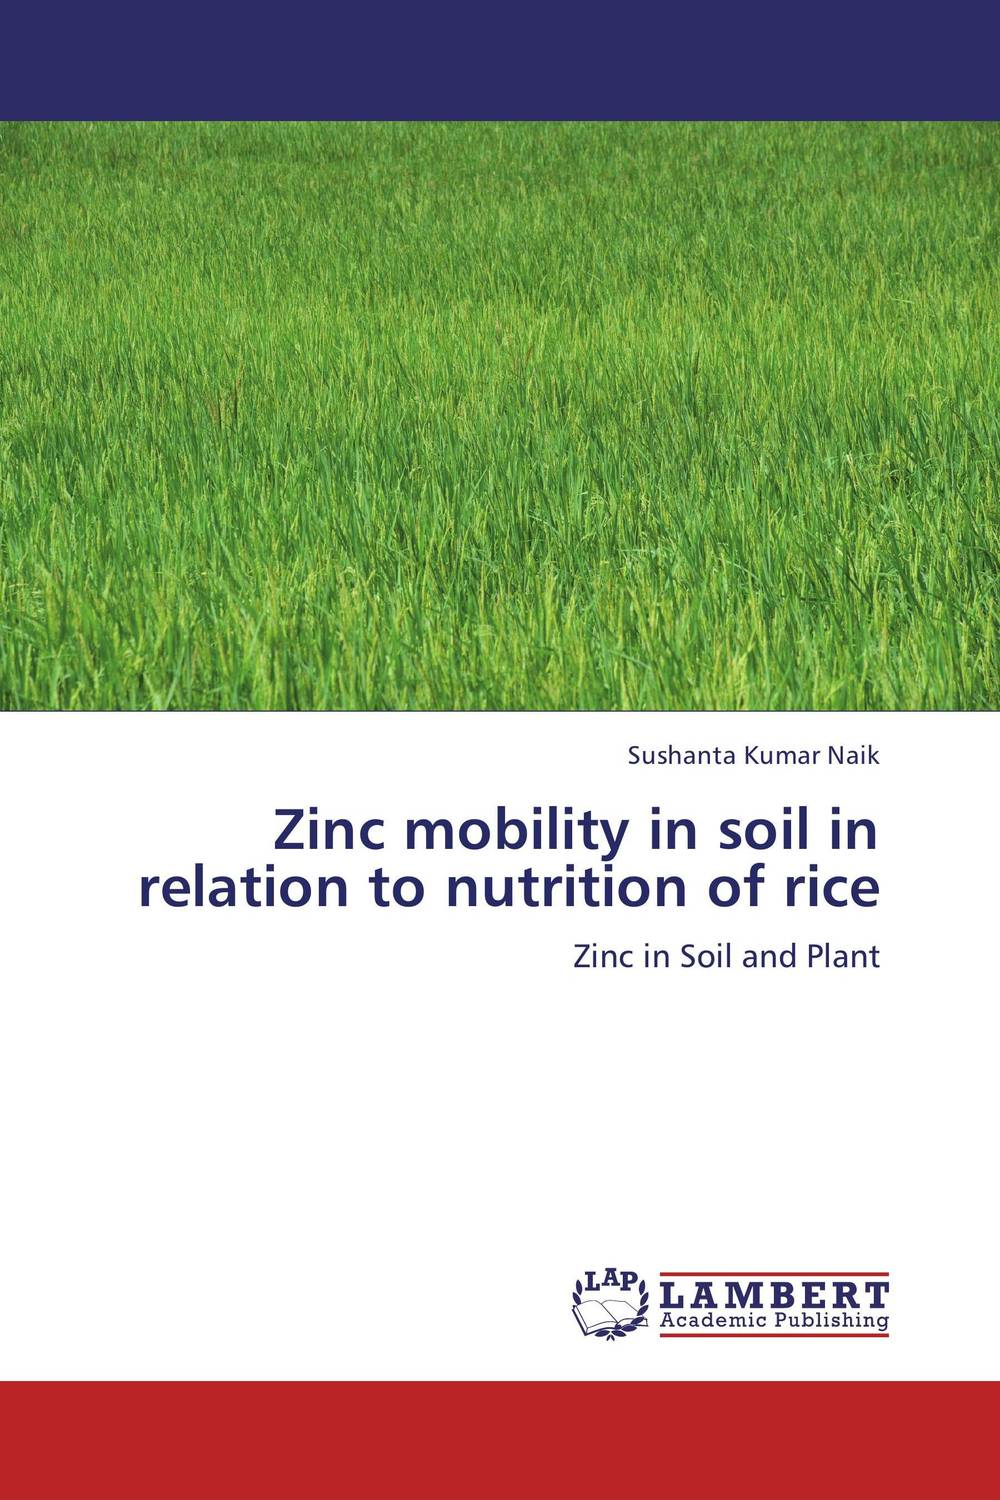 Zinc mobility in soil in relation to nutrition of rice k r k naidu a v ramana and r veeraraghavaiah common vetch management in rice fallow blackgram